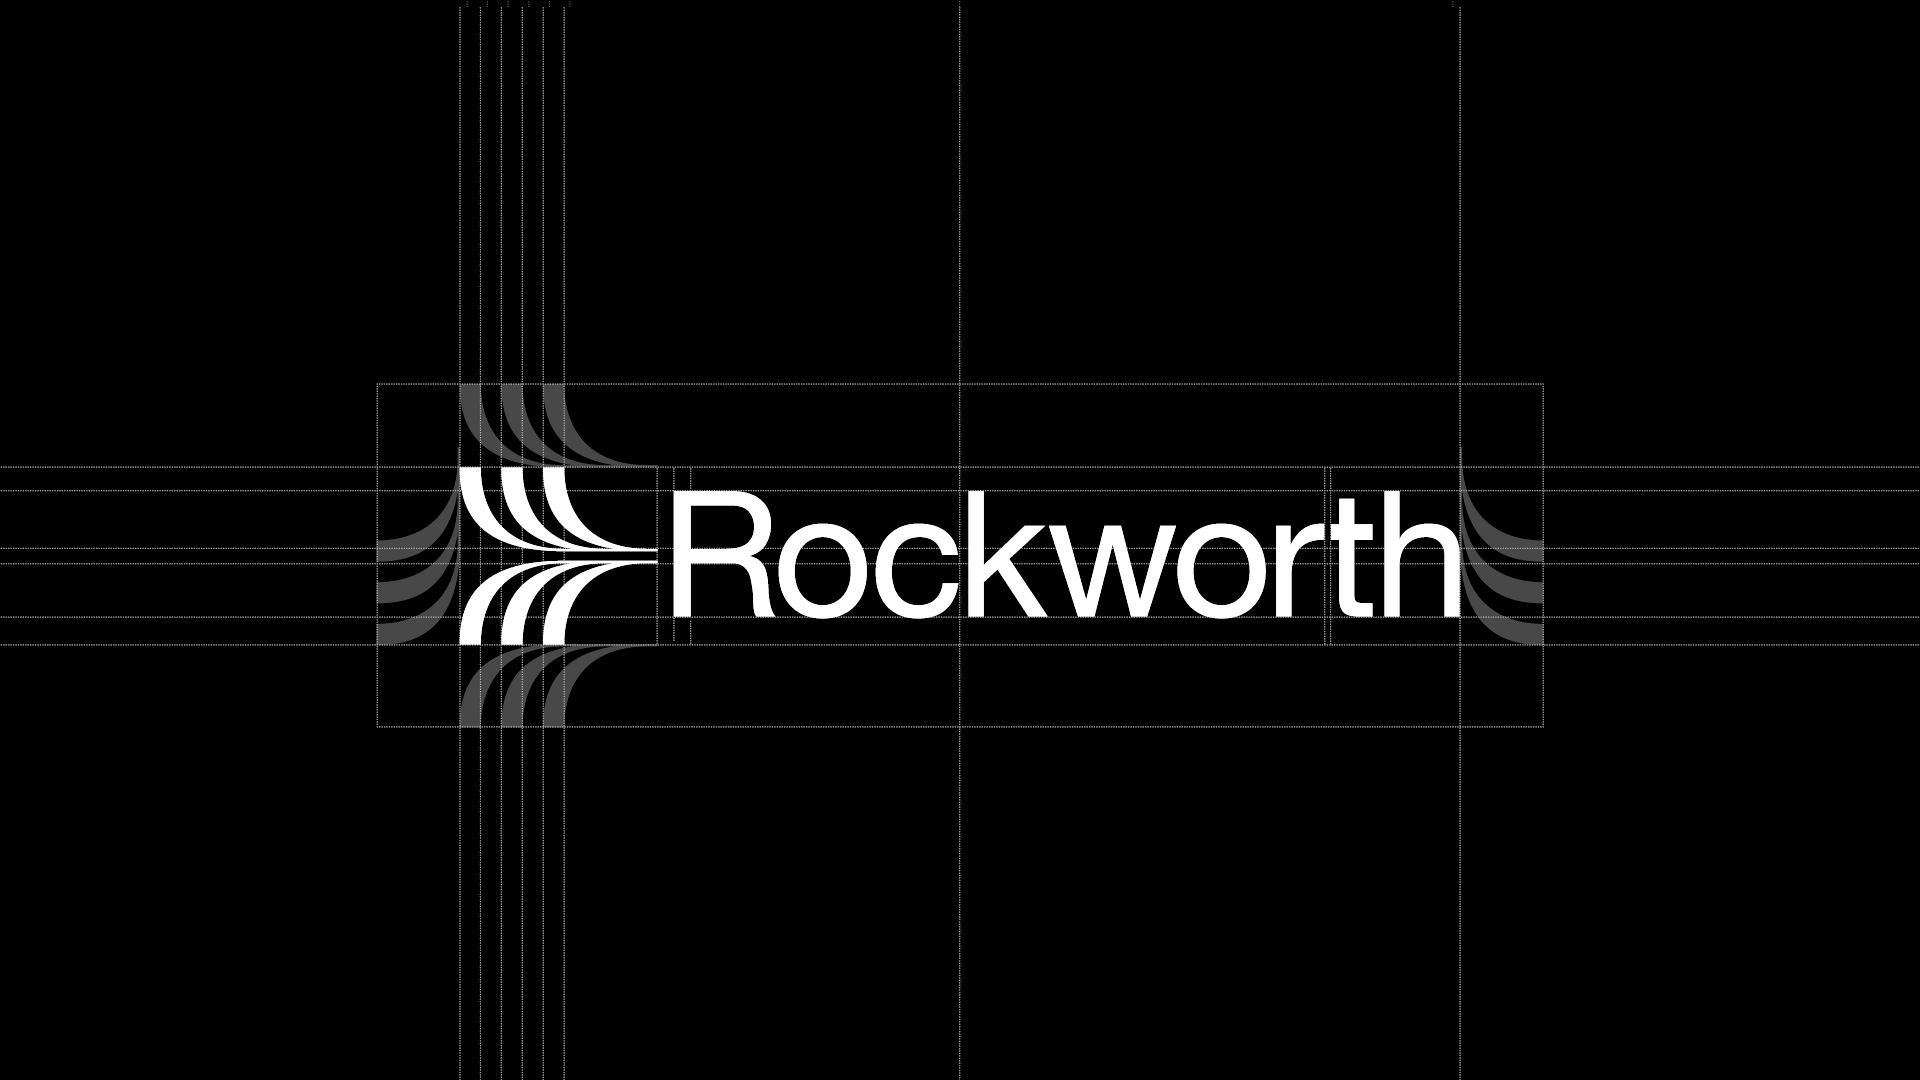 Rockworth-logo4